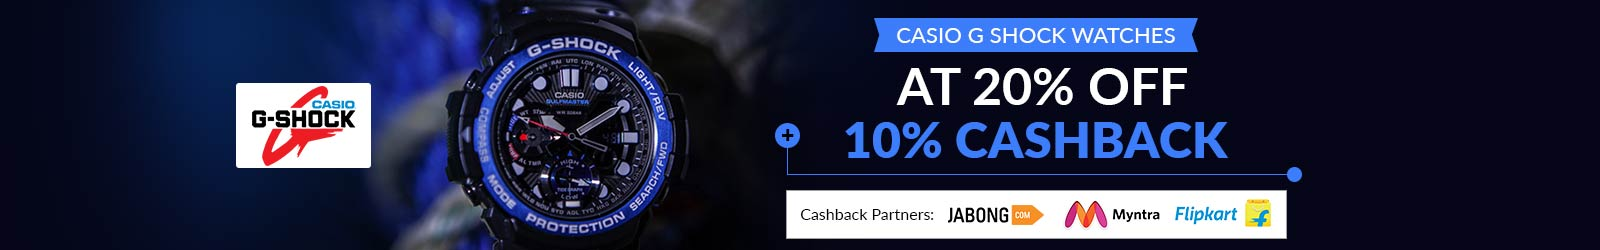 8baffcc402f Casio G Shock Price List India  Upto 23% Off Offers + 10% Cashback ...